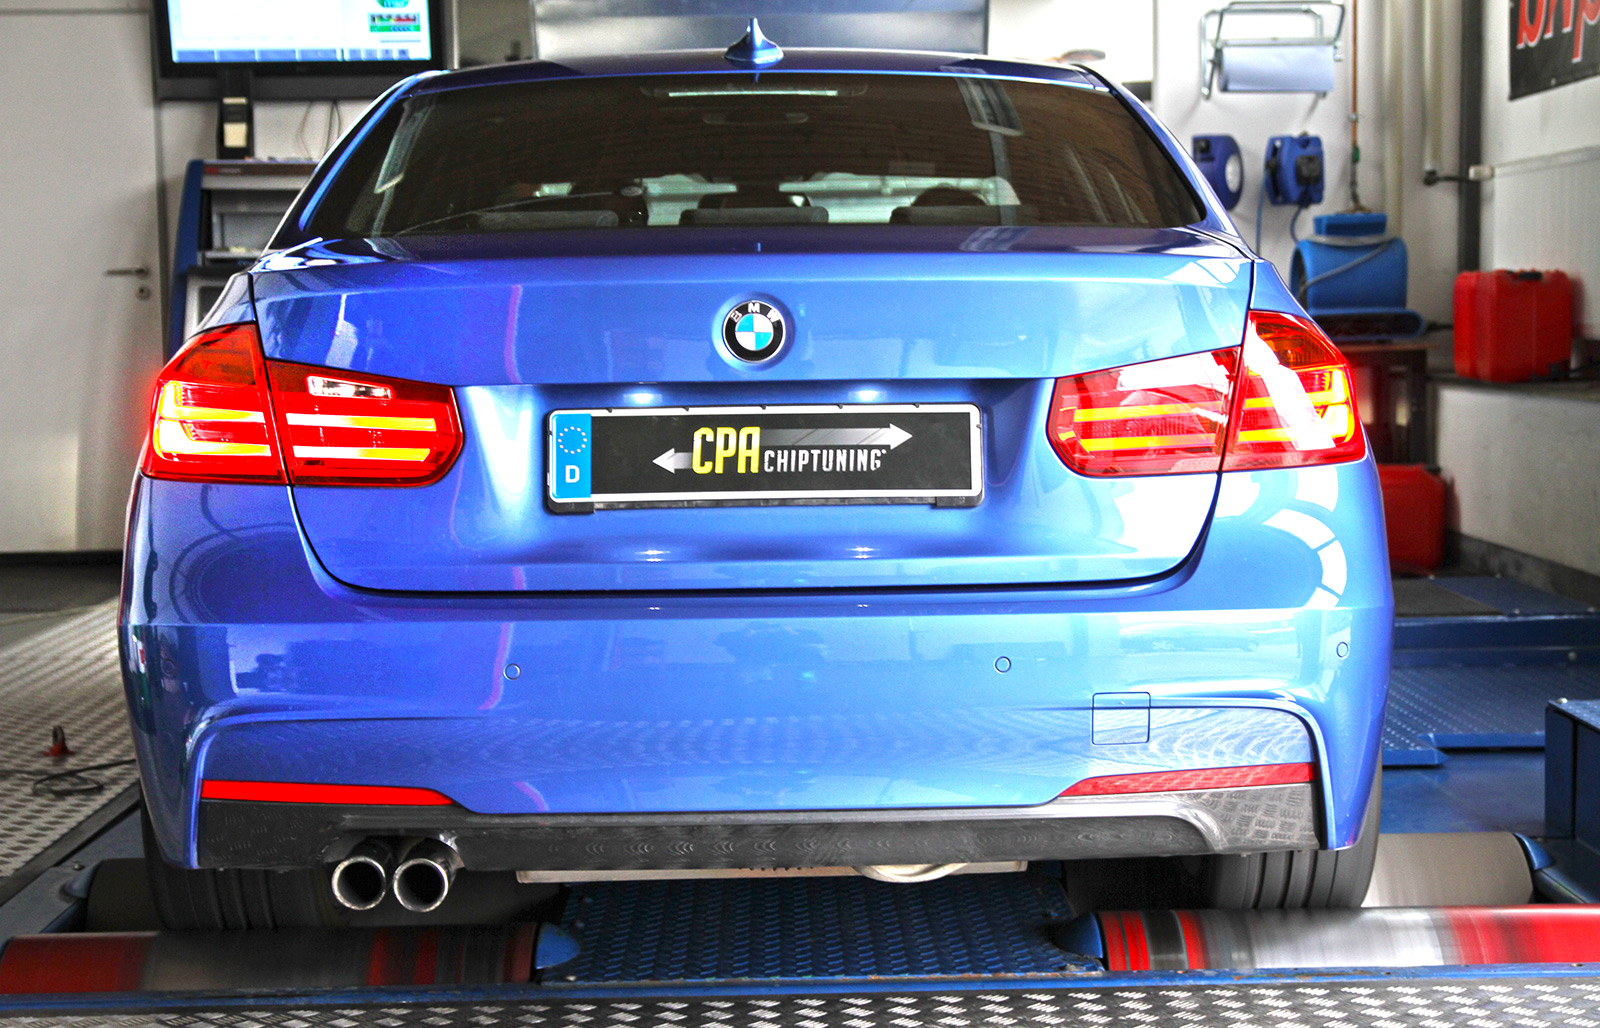 Software development for the BMW 3-series (F30) 328i